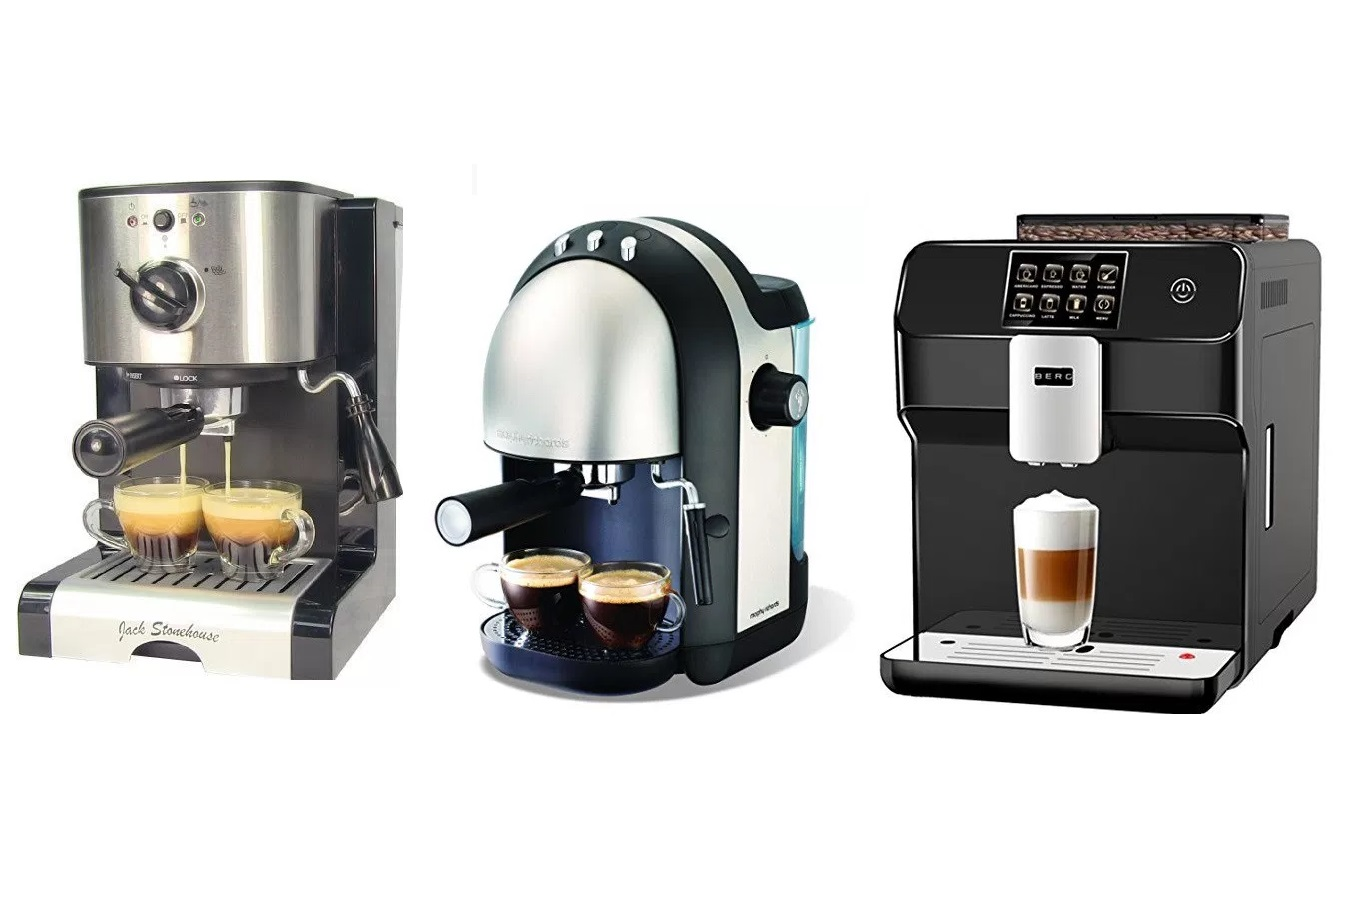 Top 10 Very Best Espresso Cappuccino Coffee Machines You